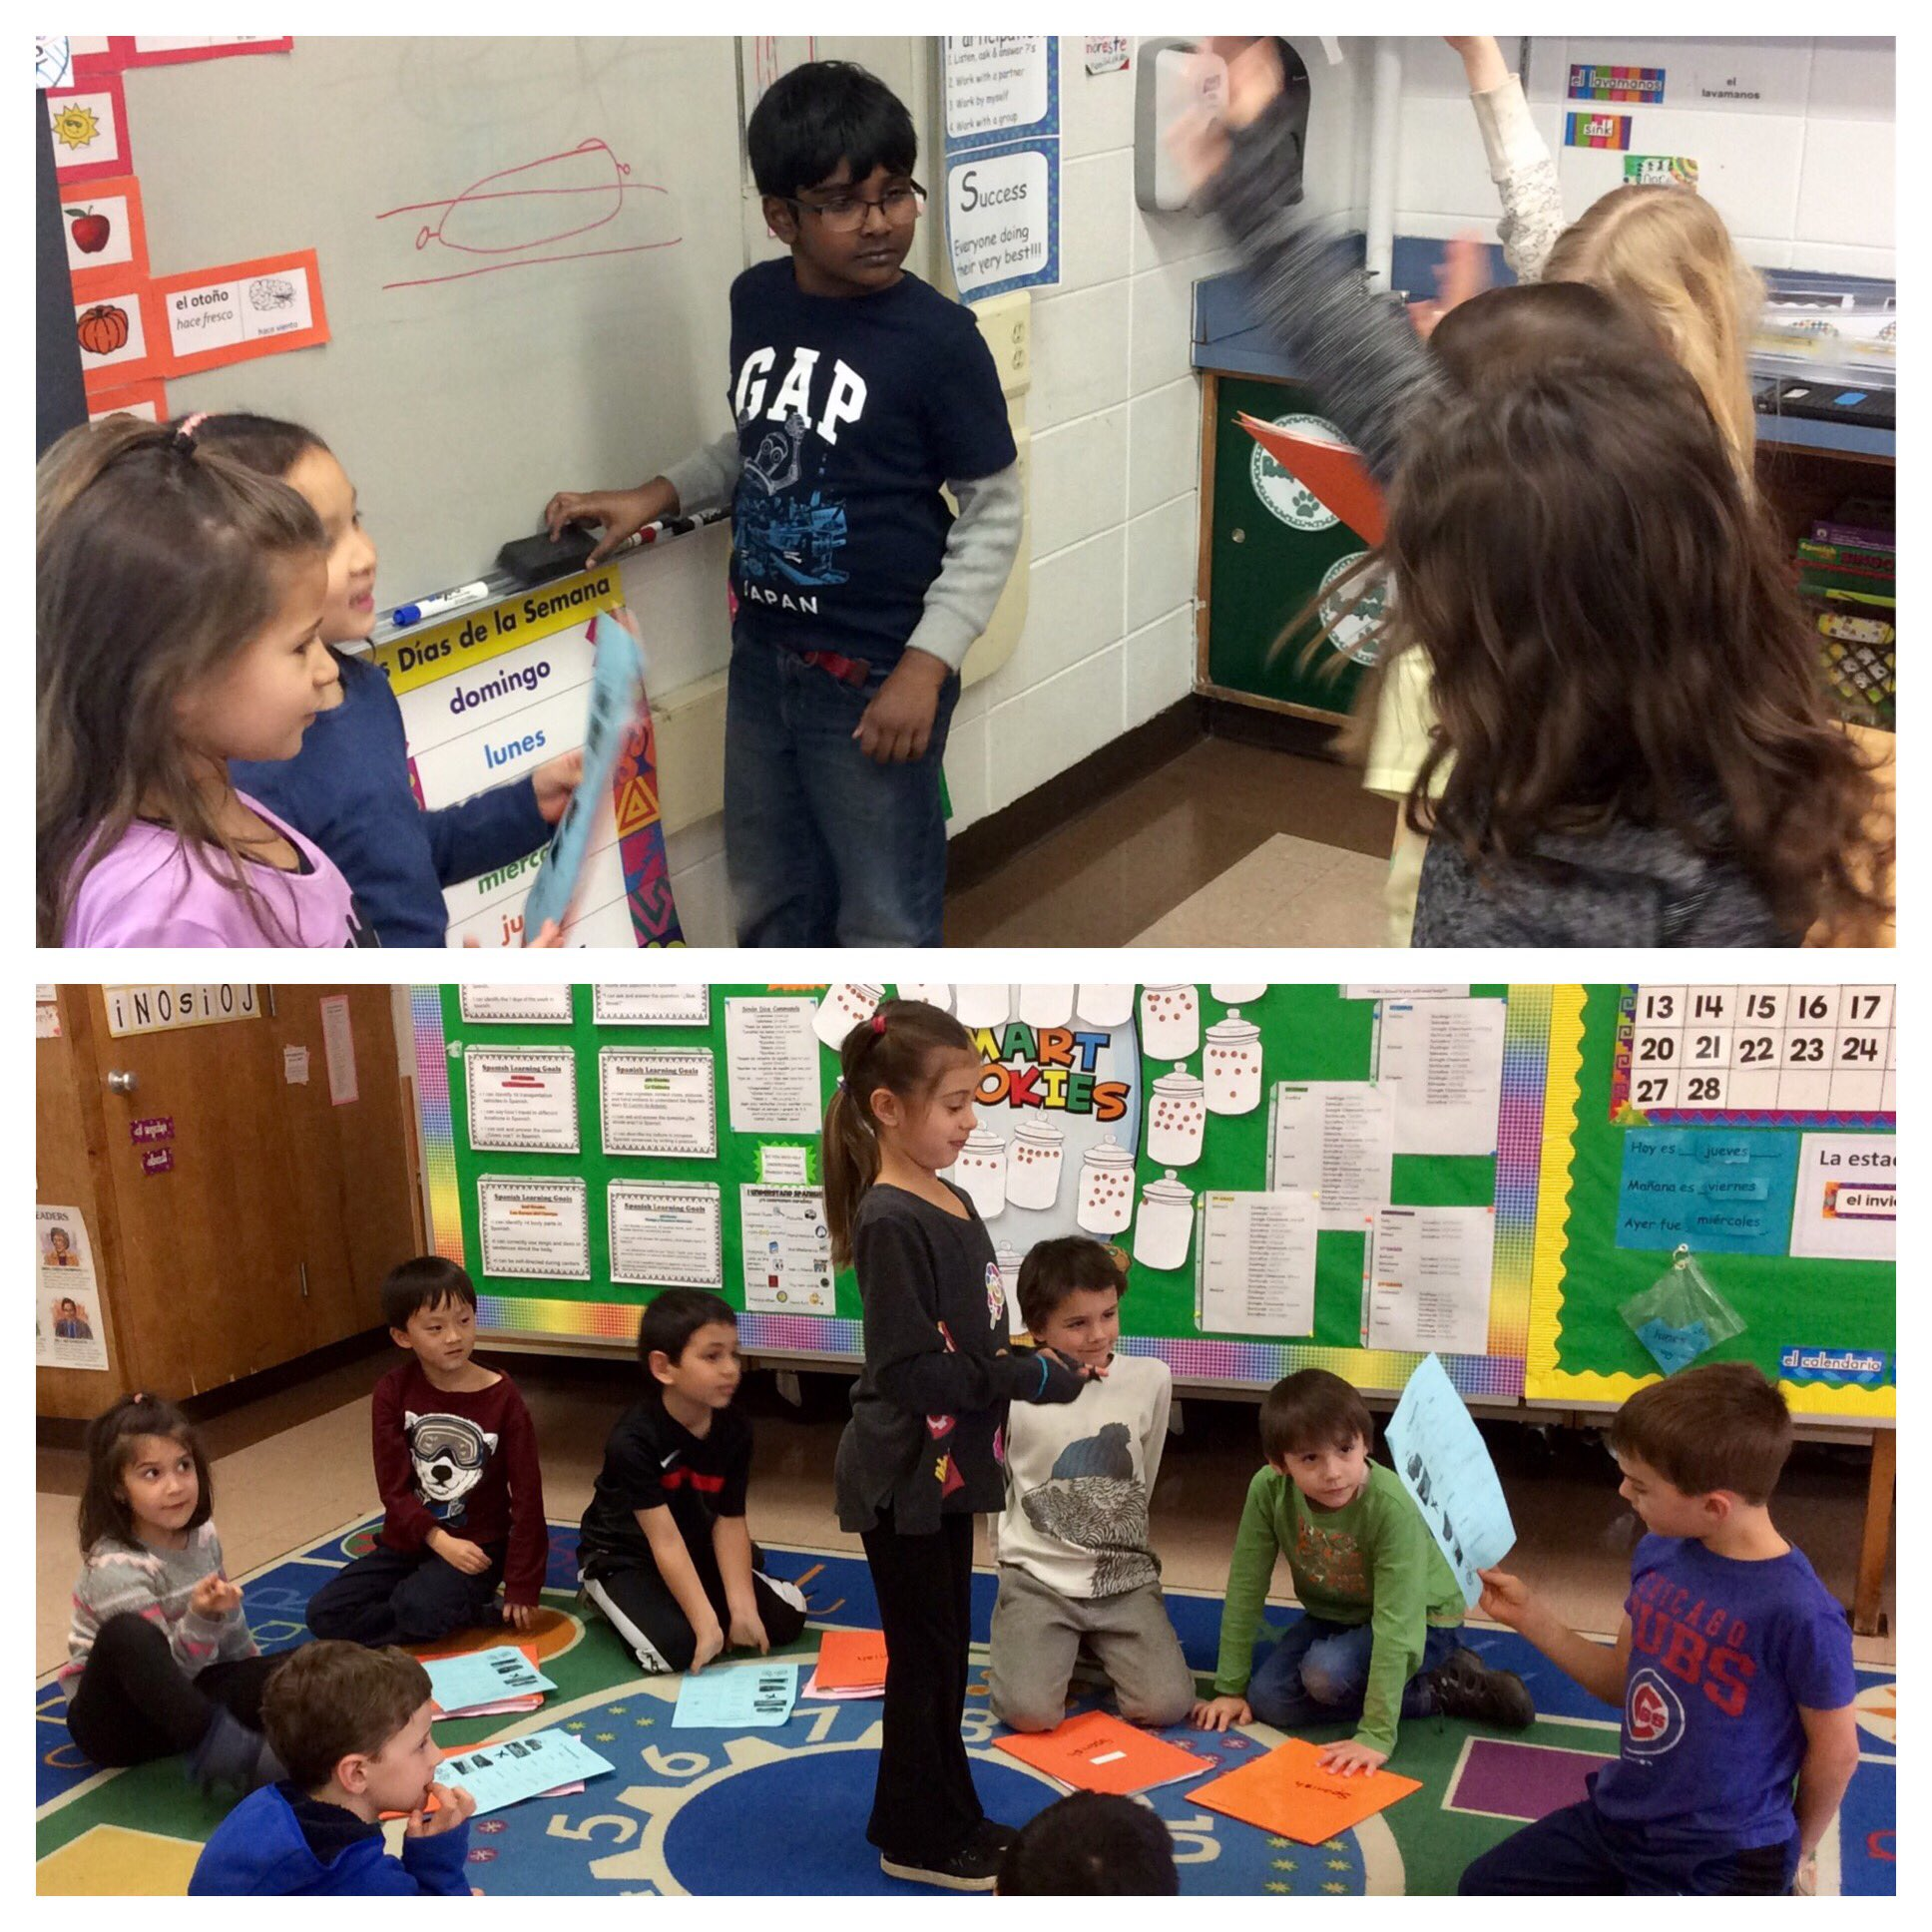 Pictionary & Charades are fun, active ways for students to practice new Spanish vocabulary words! #sp109 #engage109 https://t.co/wqGgYPOxnw